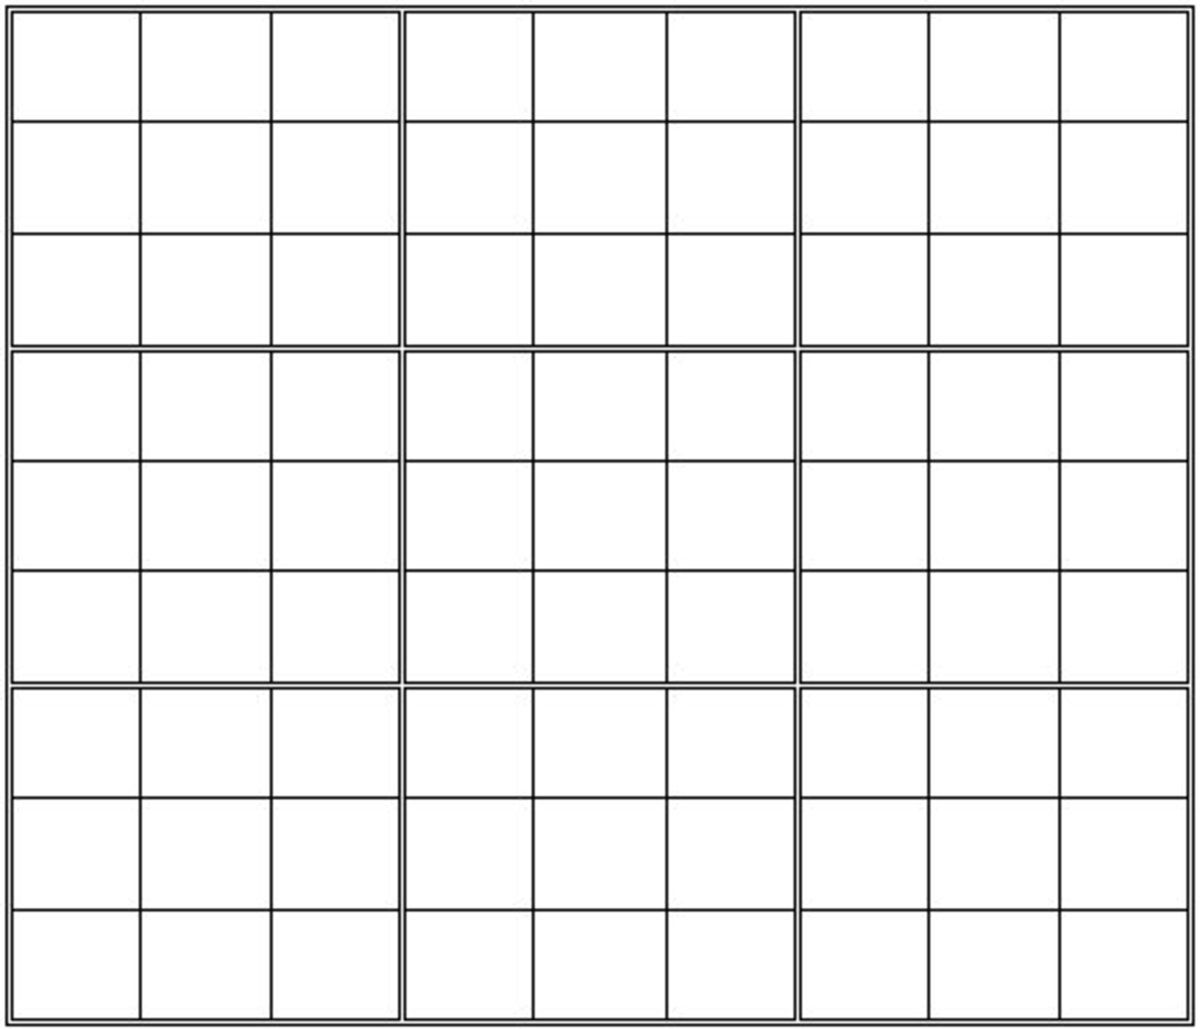 Printable Blank Sudoku Grid | HubPages